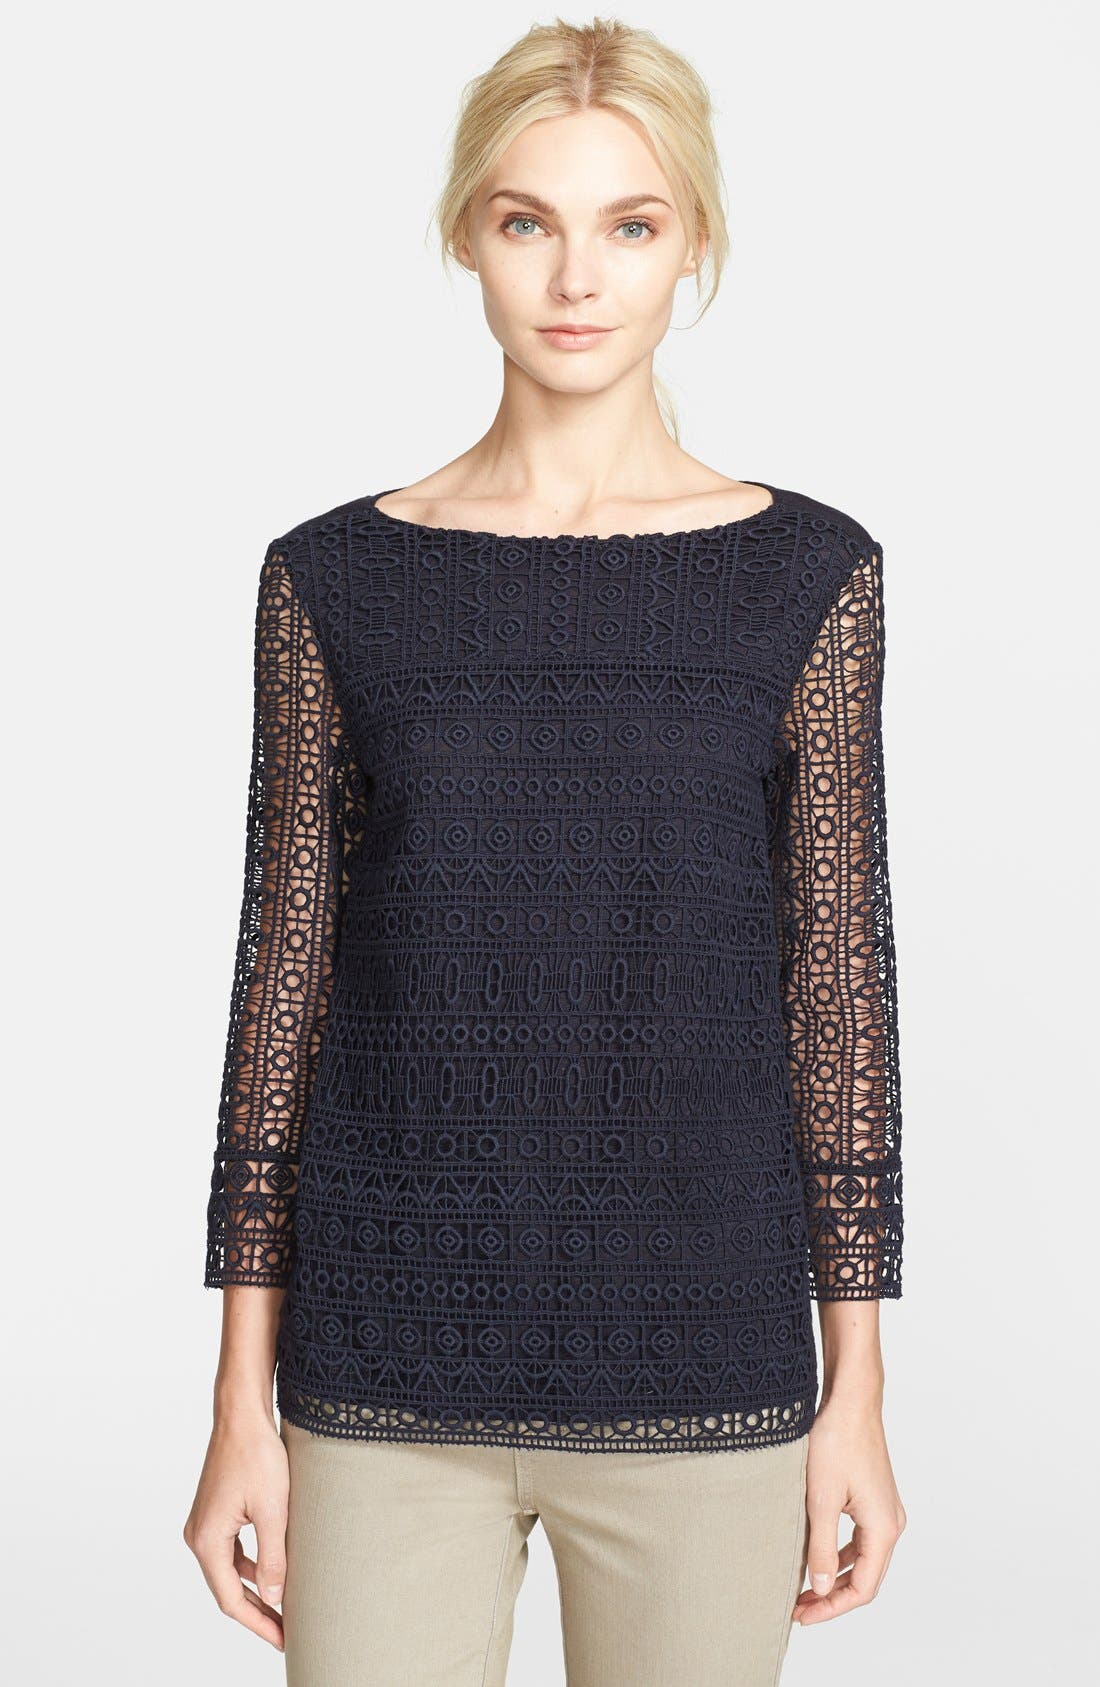 Alternate Image 1 Selected - Tory Burch 'Harlow' Guipure Lace Tee